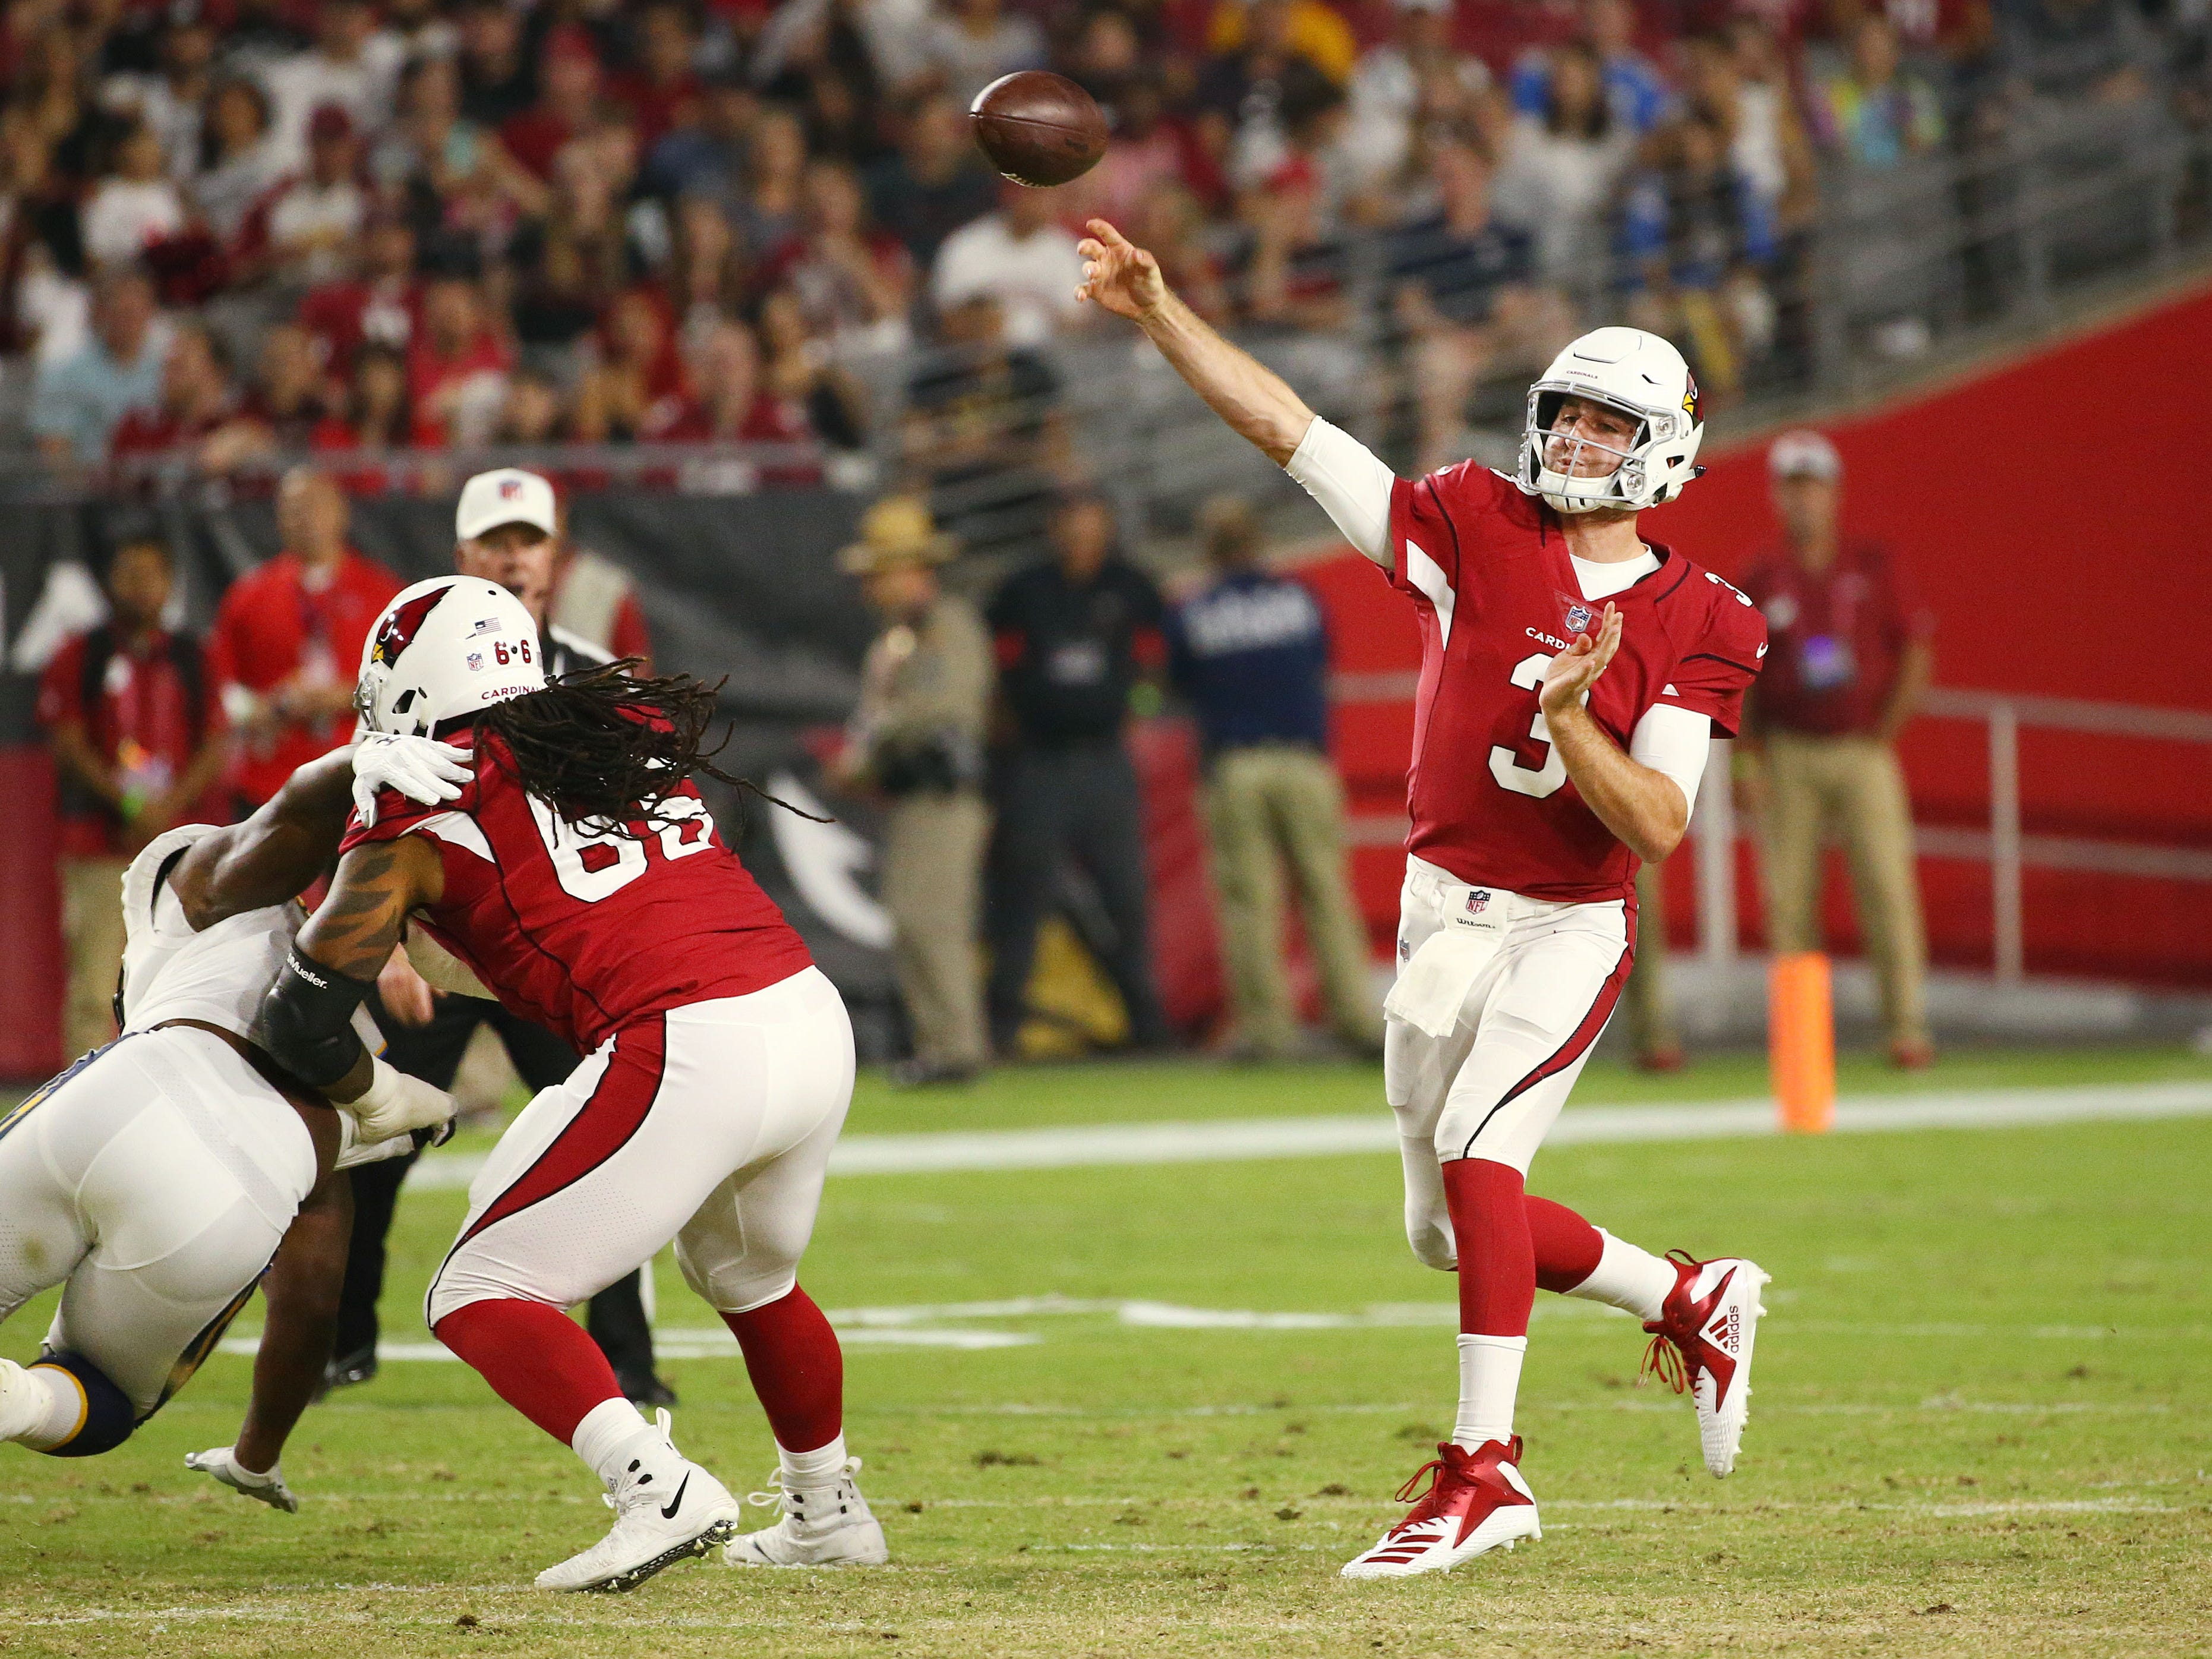 Arizona Cardinals quarterback Josh Rosen completes a pass against the L.A. Chargers in the first half during a preseason NFL football game on Aug. 11, 2018 at University of Phoenix Stadium in Glendale, Ariz.